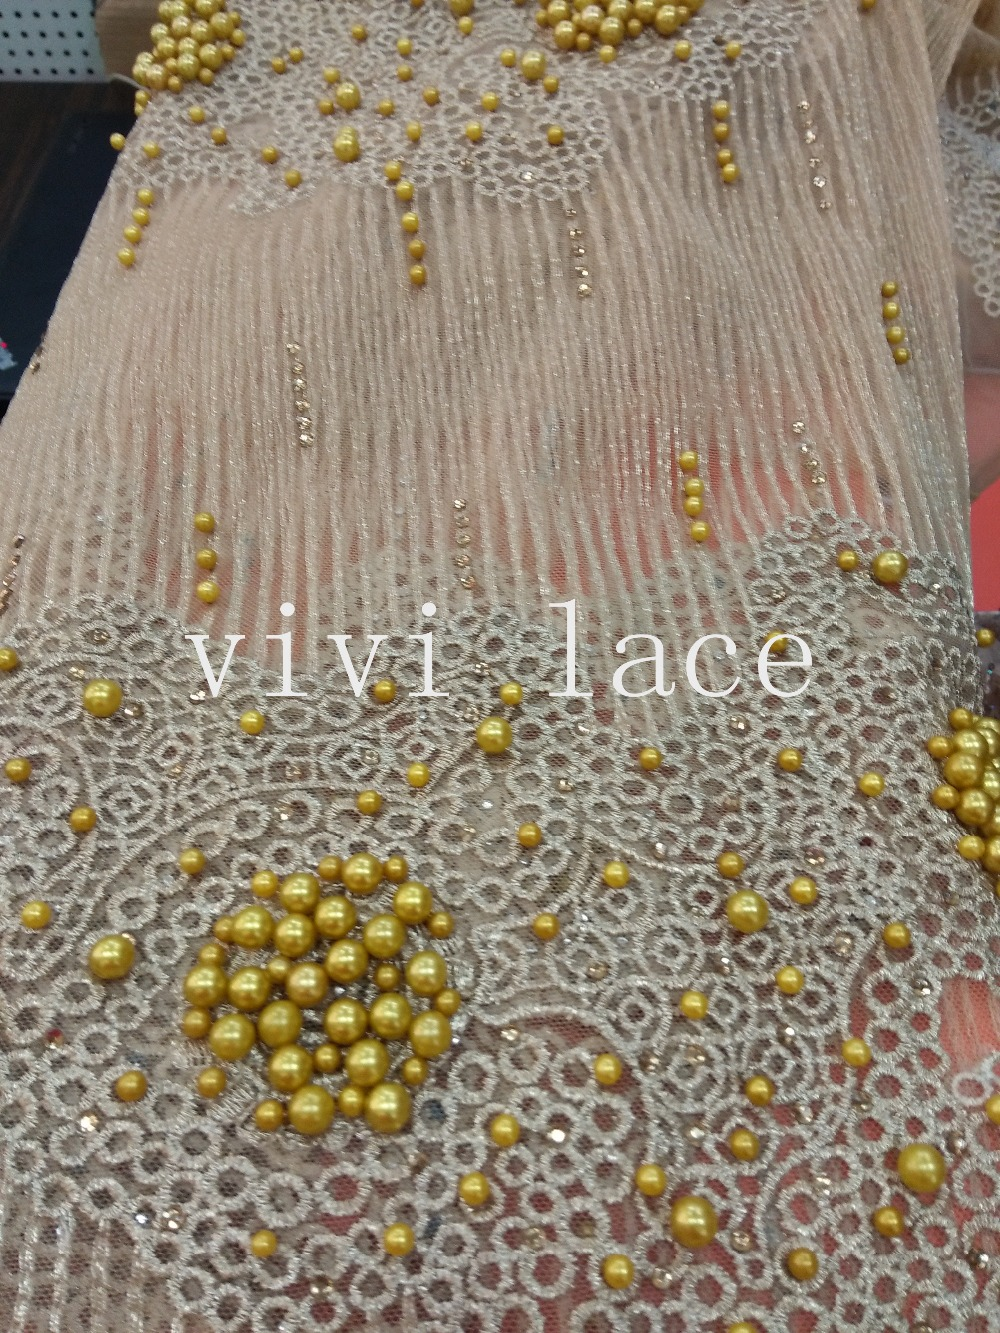 5yards QJ009 gold beads embroidery rhinestone mesh tulle lace african  fabric for wedding dress evening f3bf59f7e052